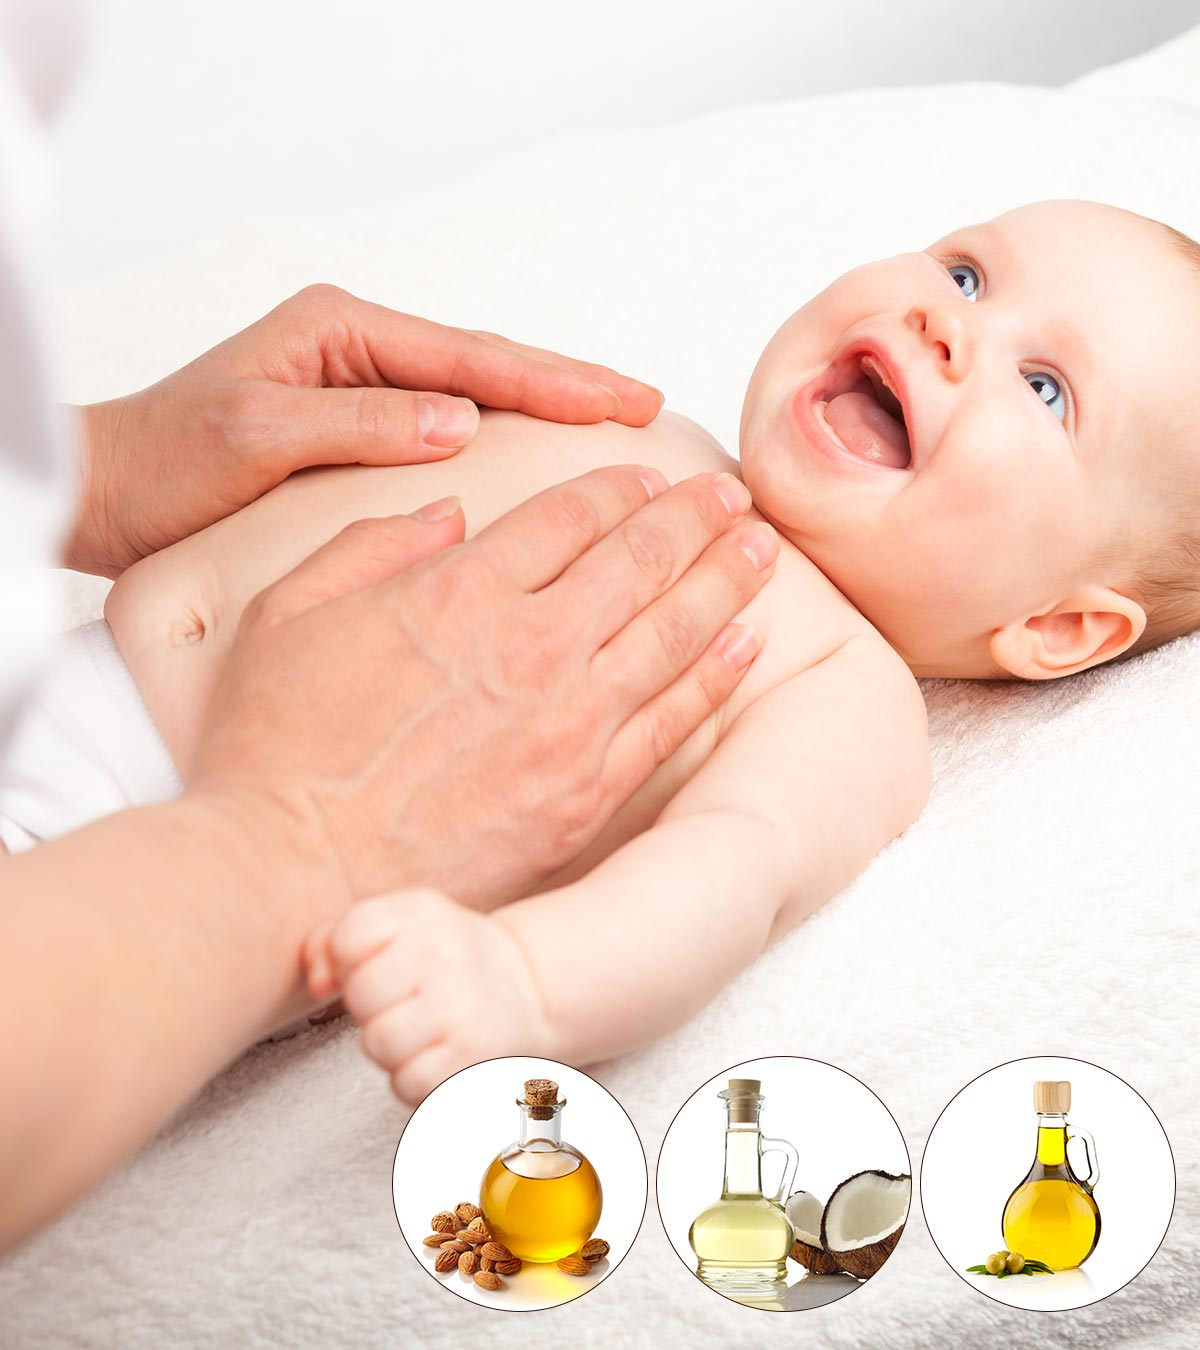 Top 10 Baby Massage Oils - Know What's Best For Your Baby